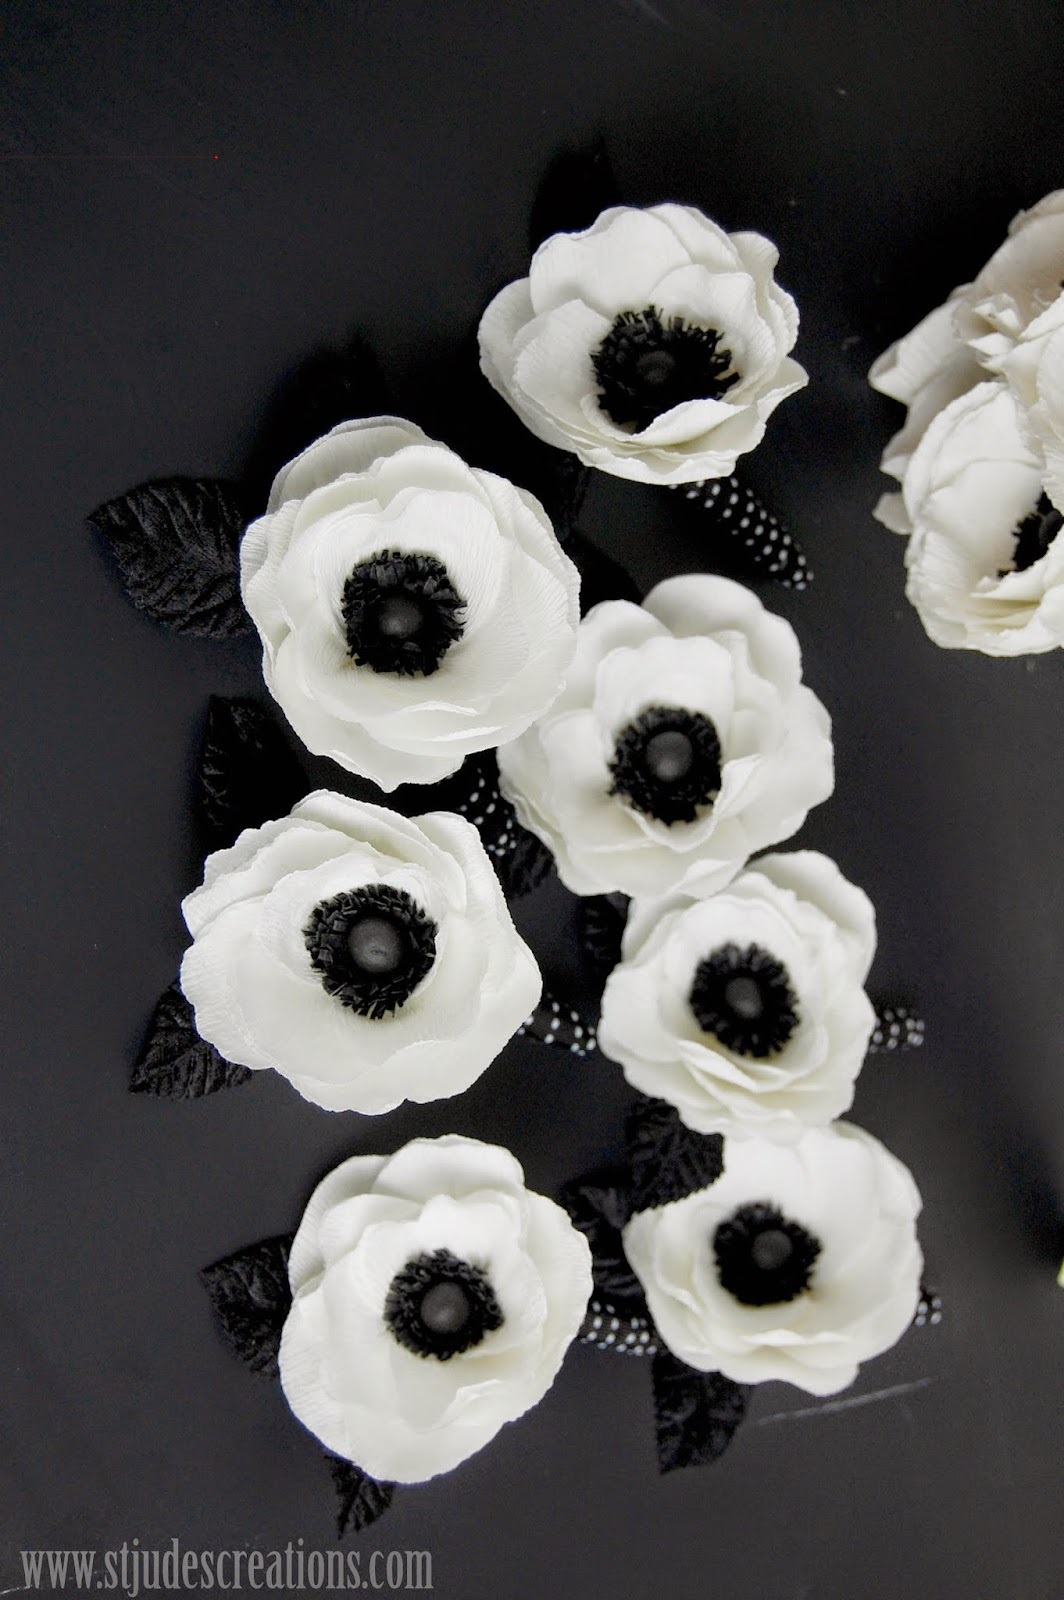 Anemone paper flower bridal bouquet black and white wedding paper flowers wedding bouquet black and white wedding paper flowers anemone izmirmasajfo Choice Image